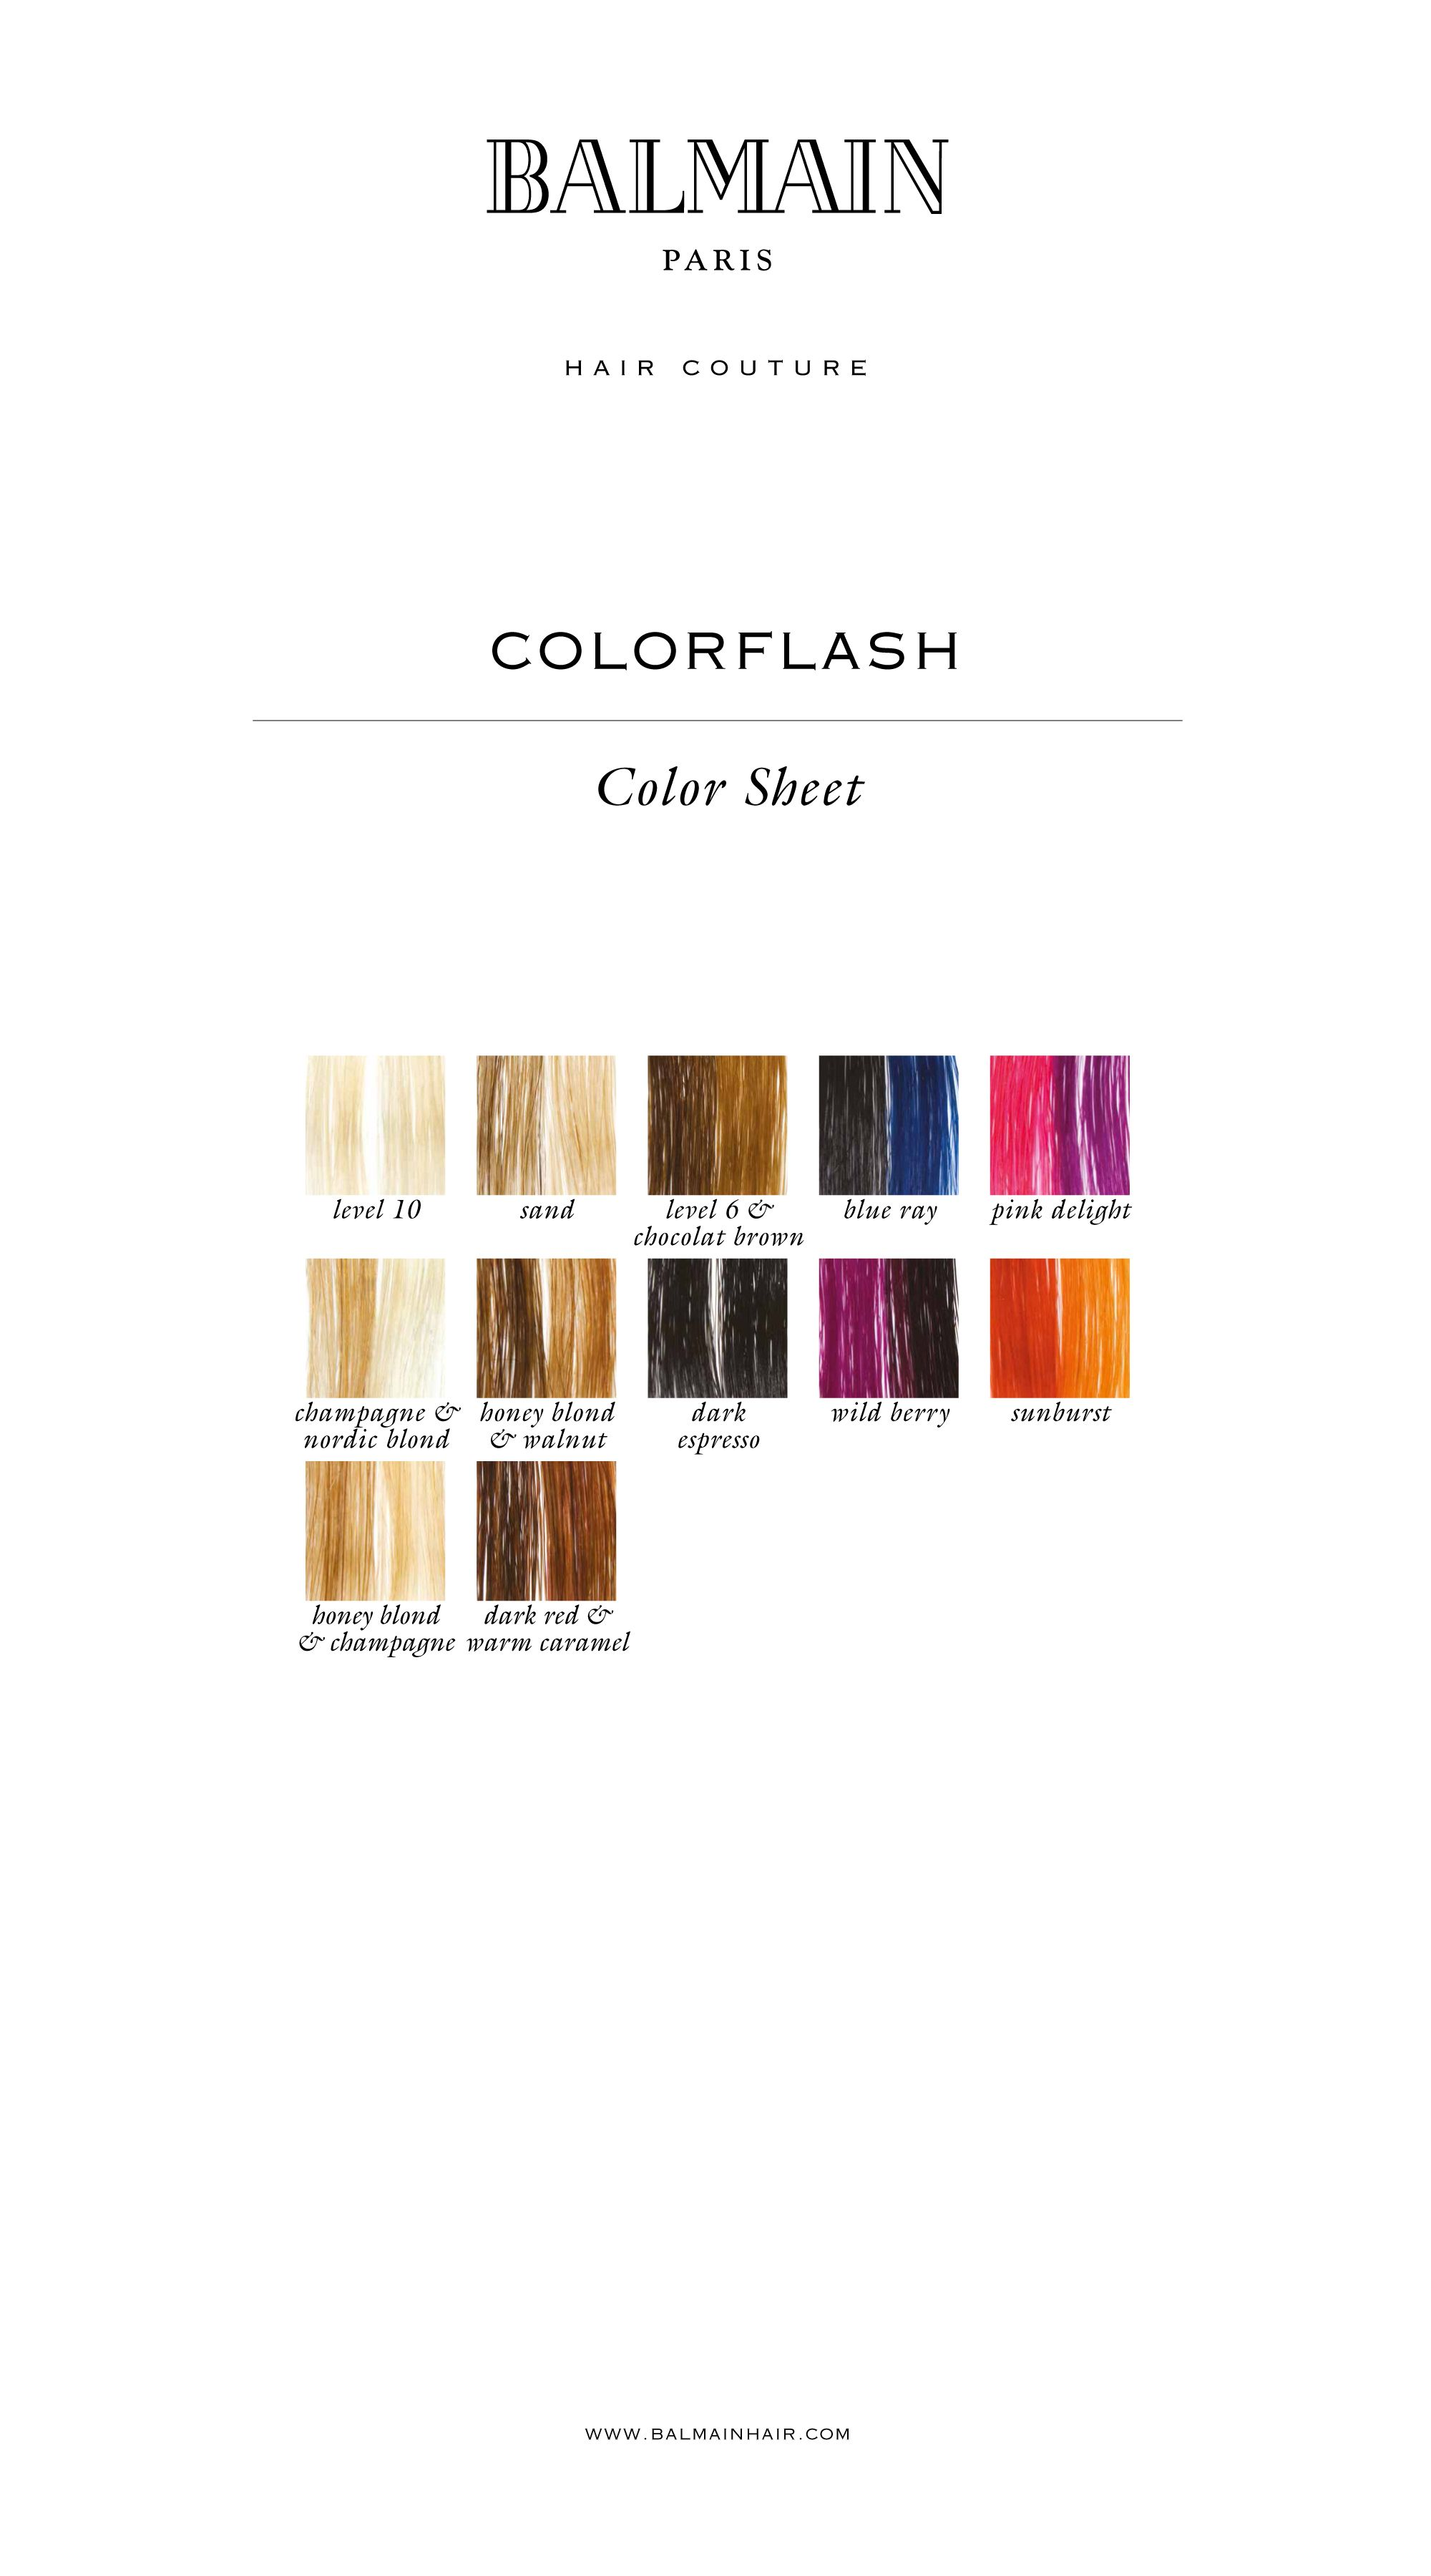 Balmain color overview colorflash hair color charts pinterest balmain color overview colorflash nvjuhfo Image collections